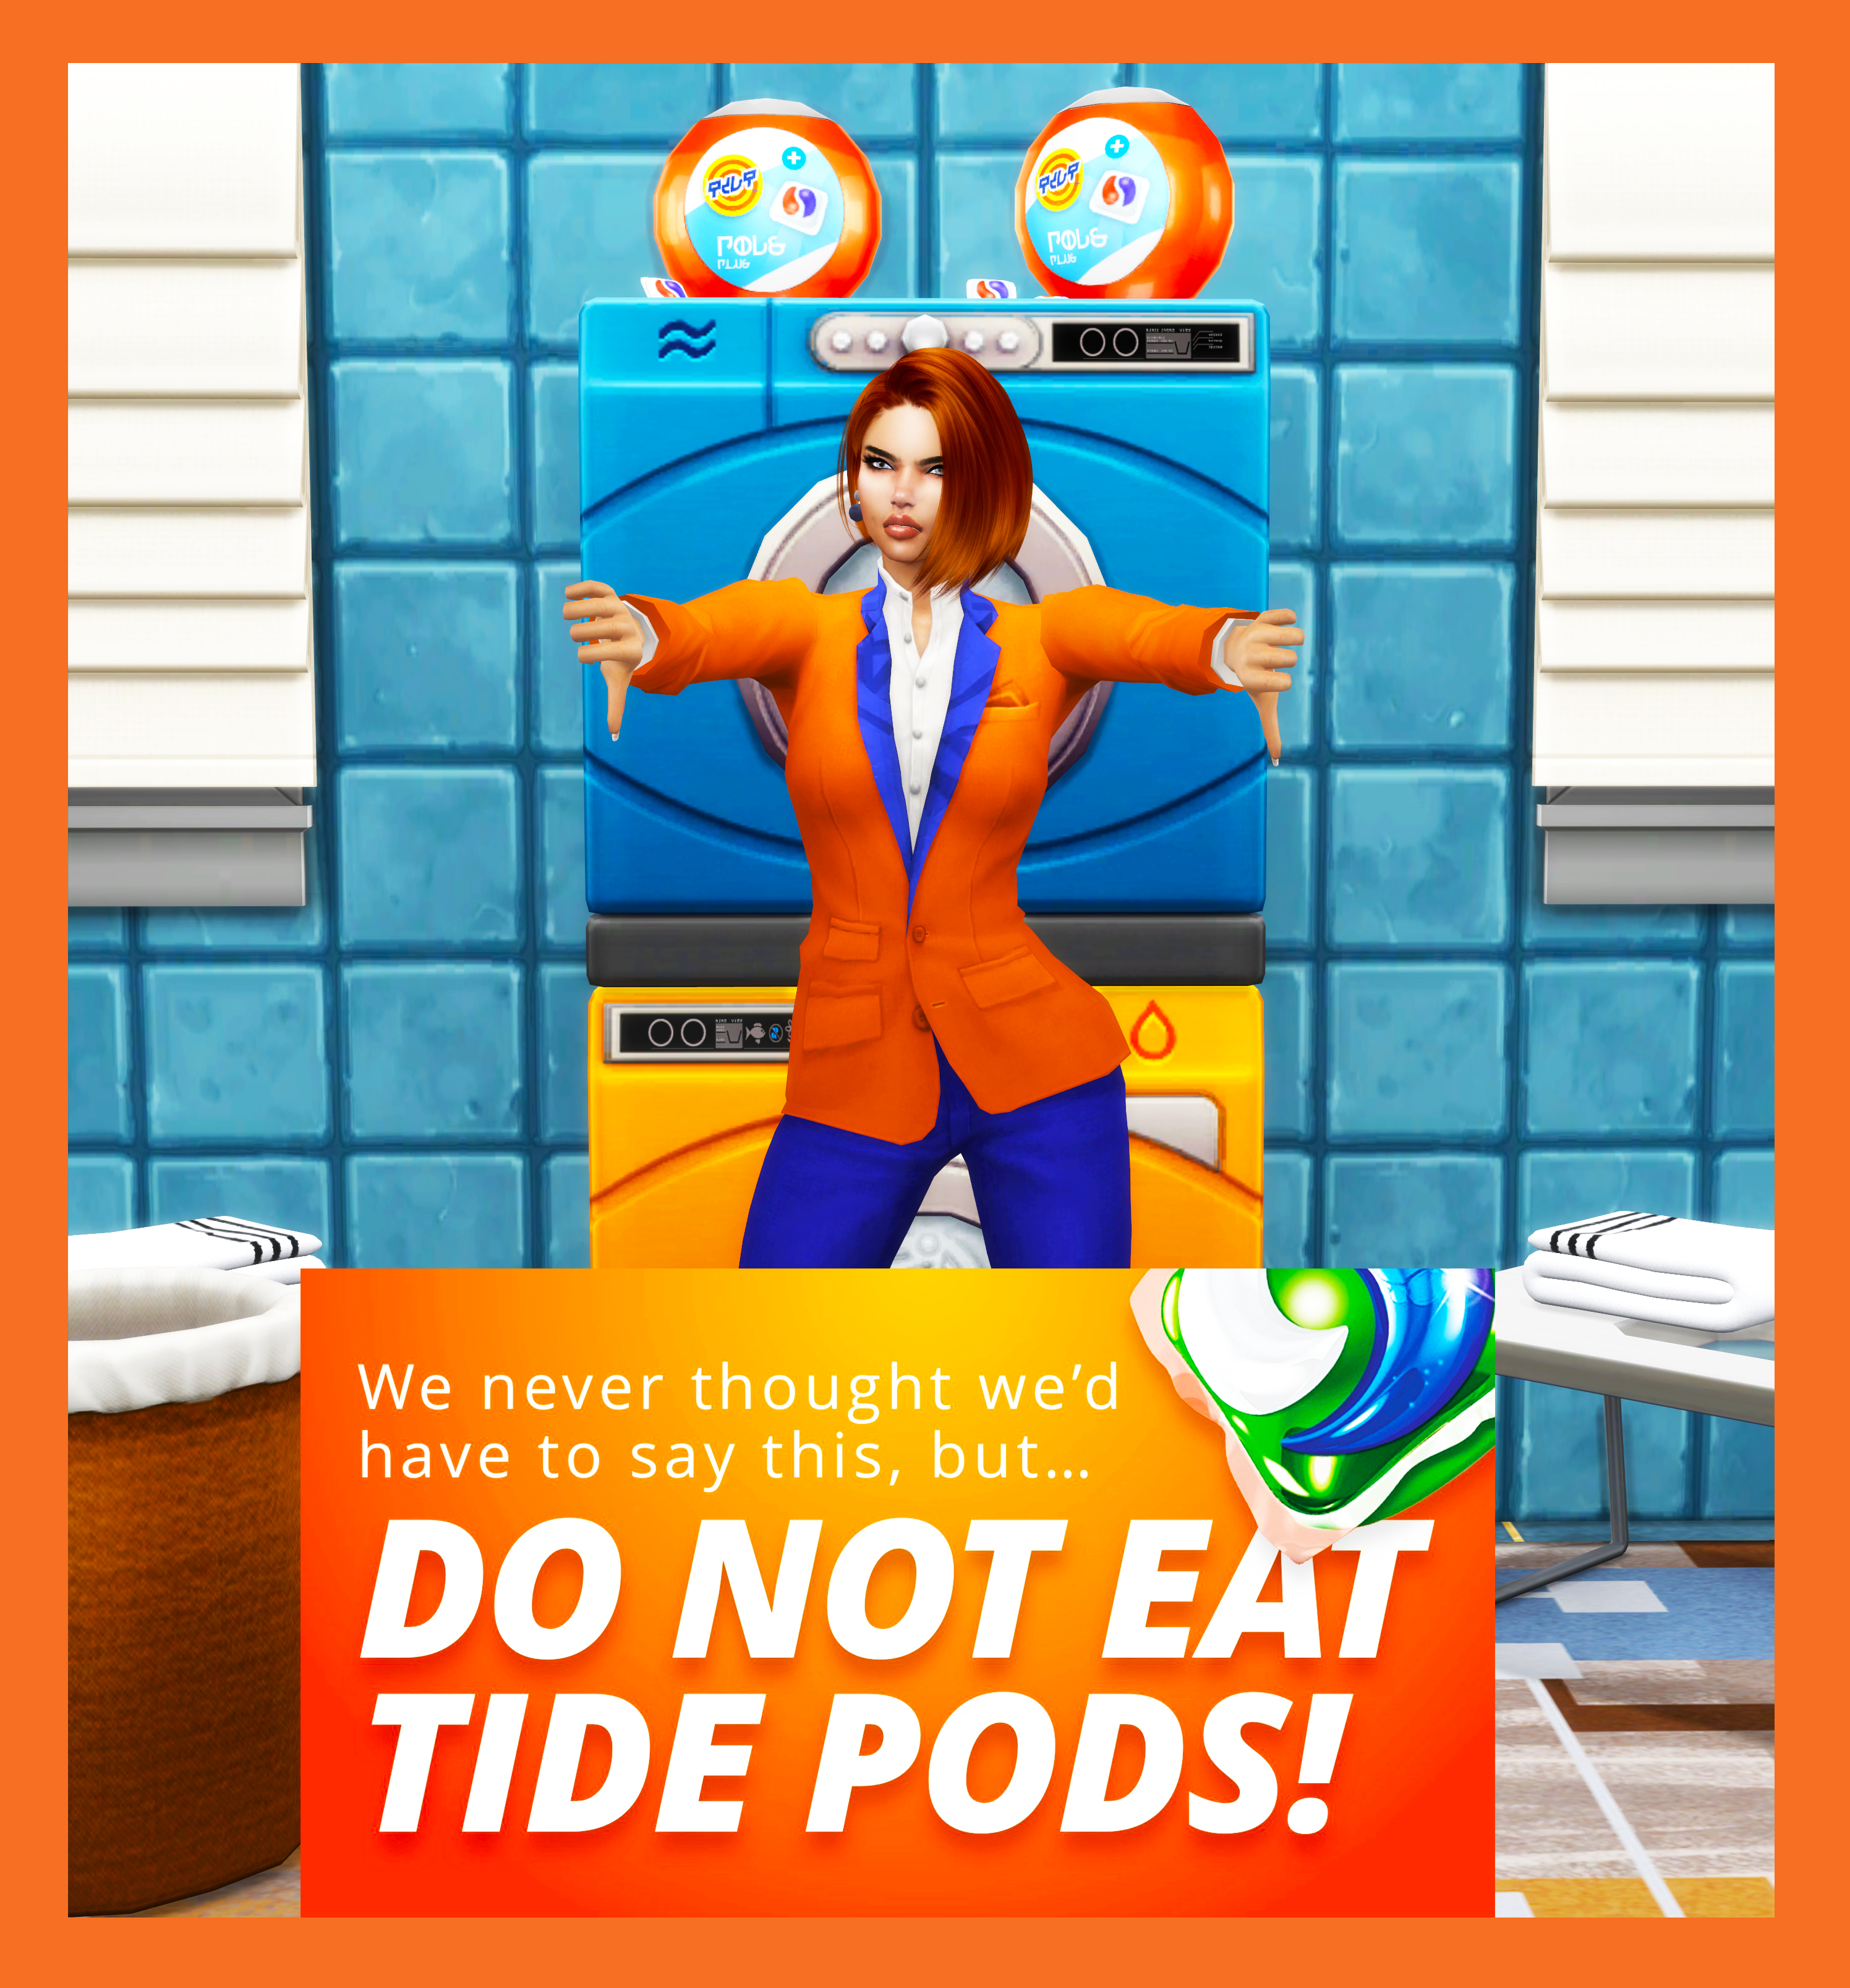 DONT-EAT-THE-TIDE-PODS-FINAL.png